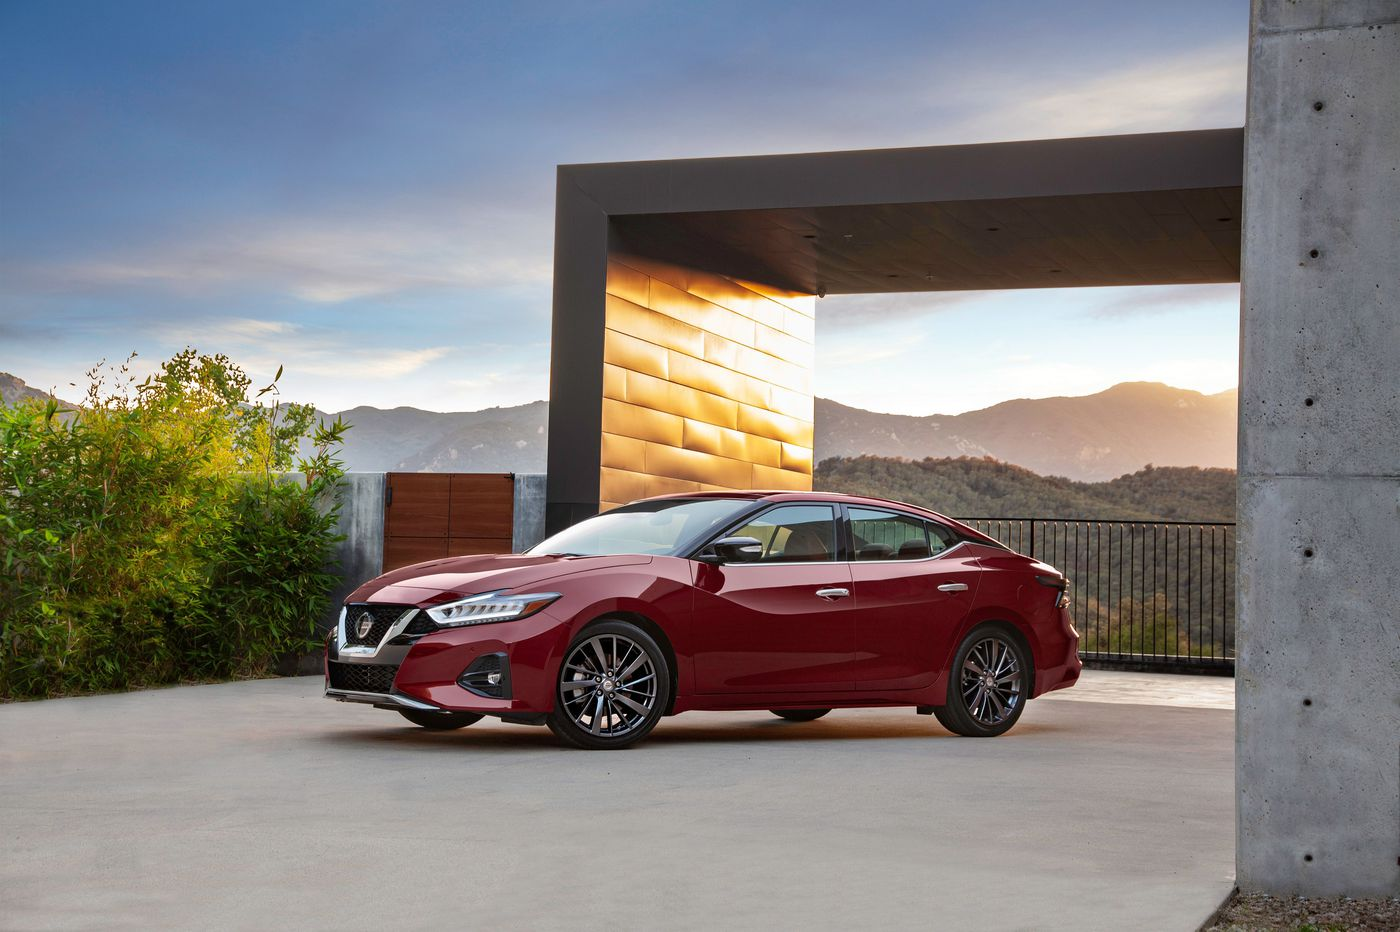 Nissan Maxima underwhelms in a face-off of large sedans